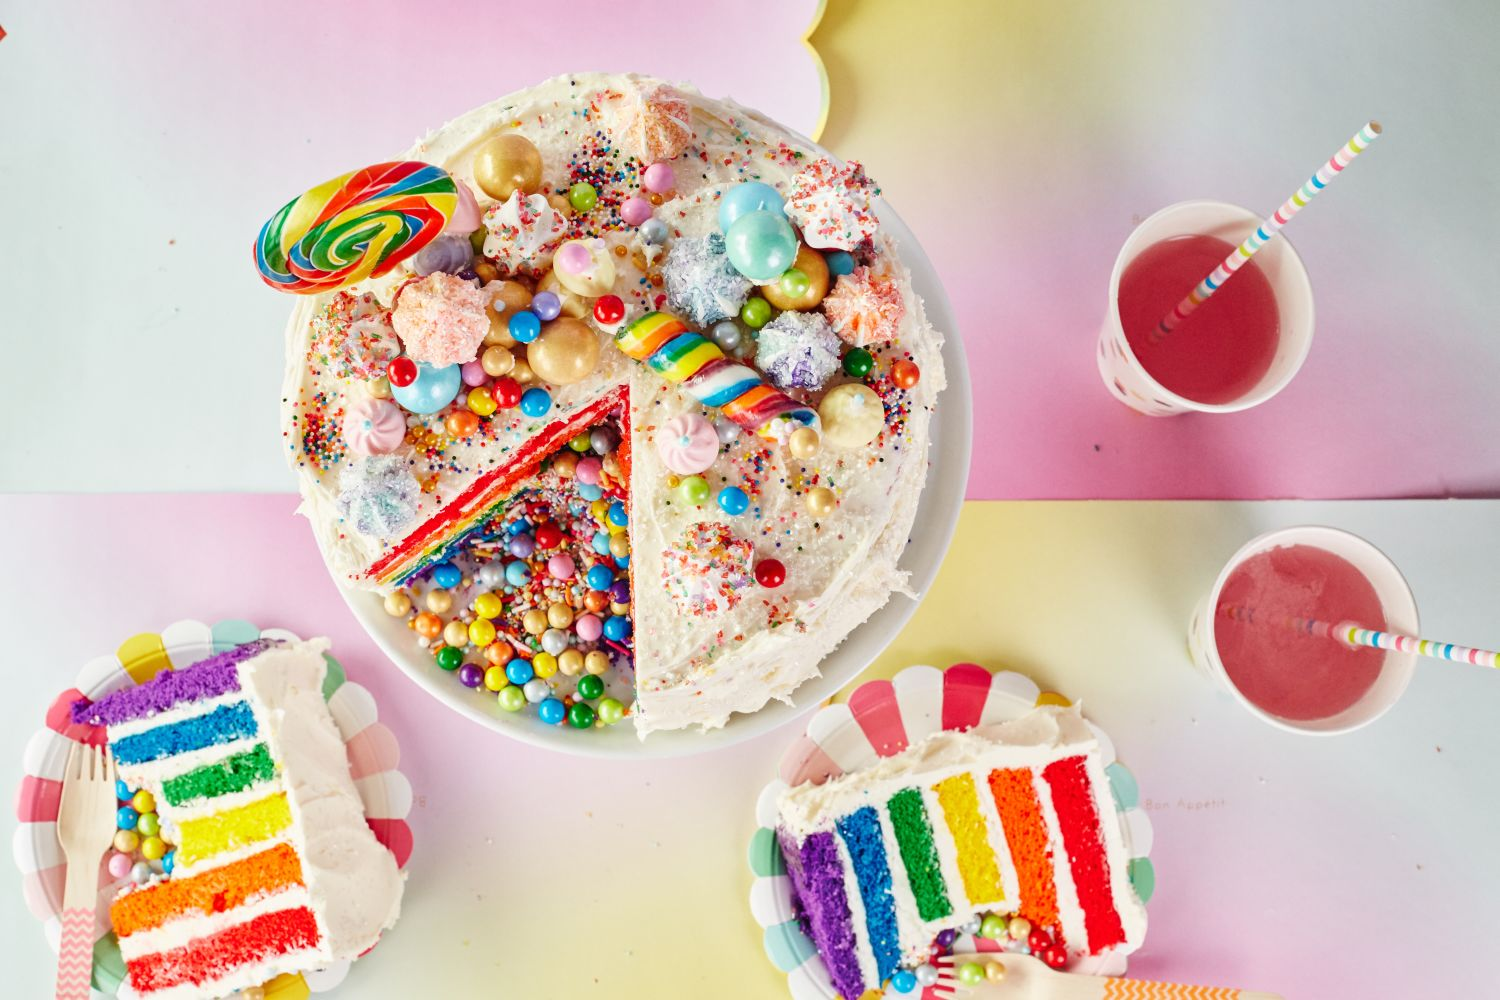 Rainbow Cake Recipe Joy Of Baking: How To Make A Rainbow Layer Cake With A Candy Surprise